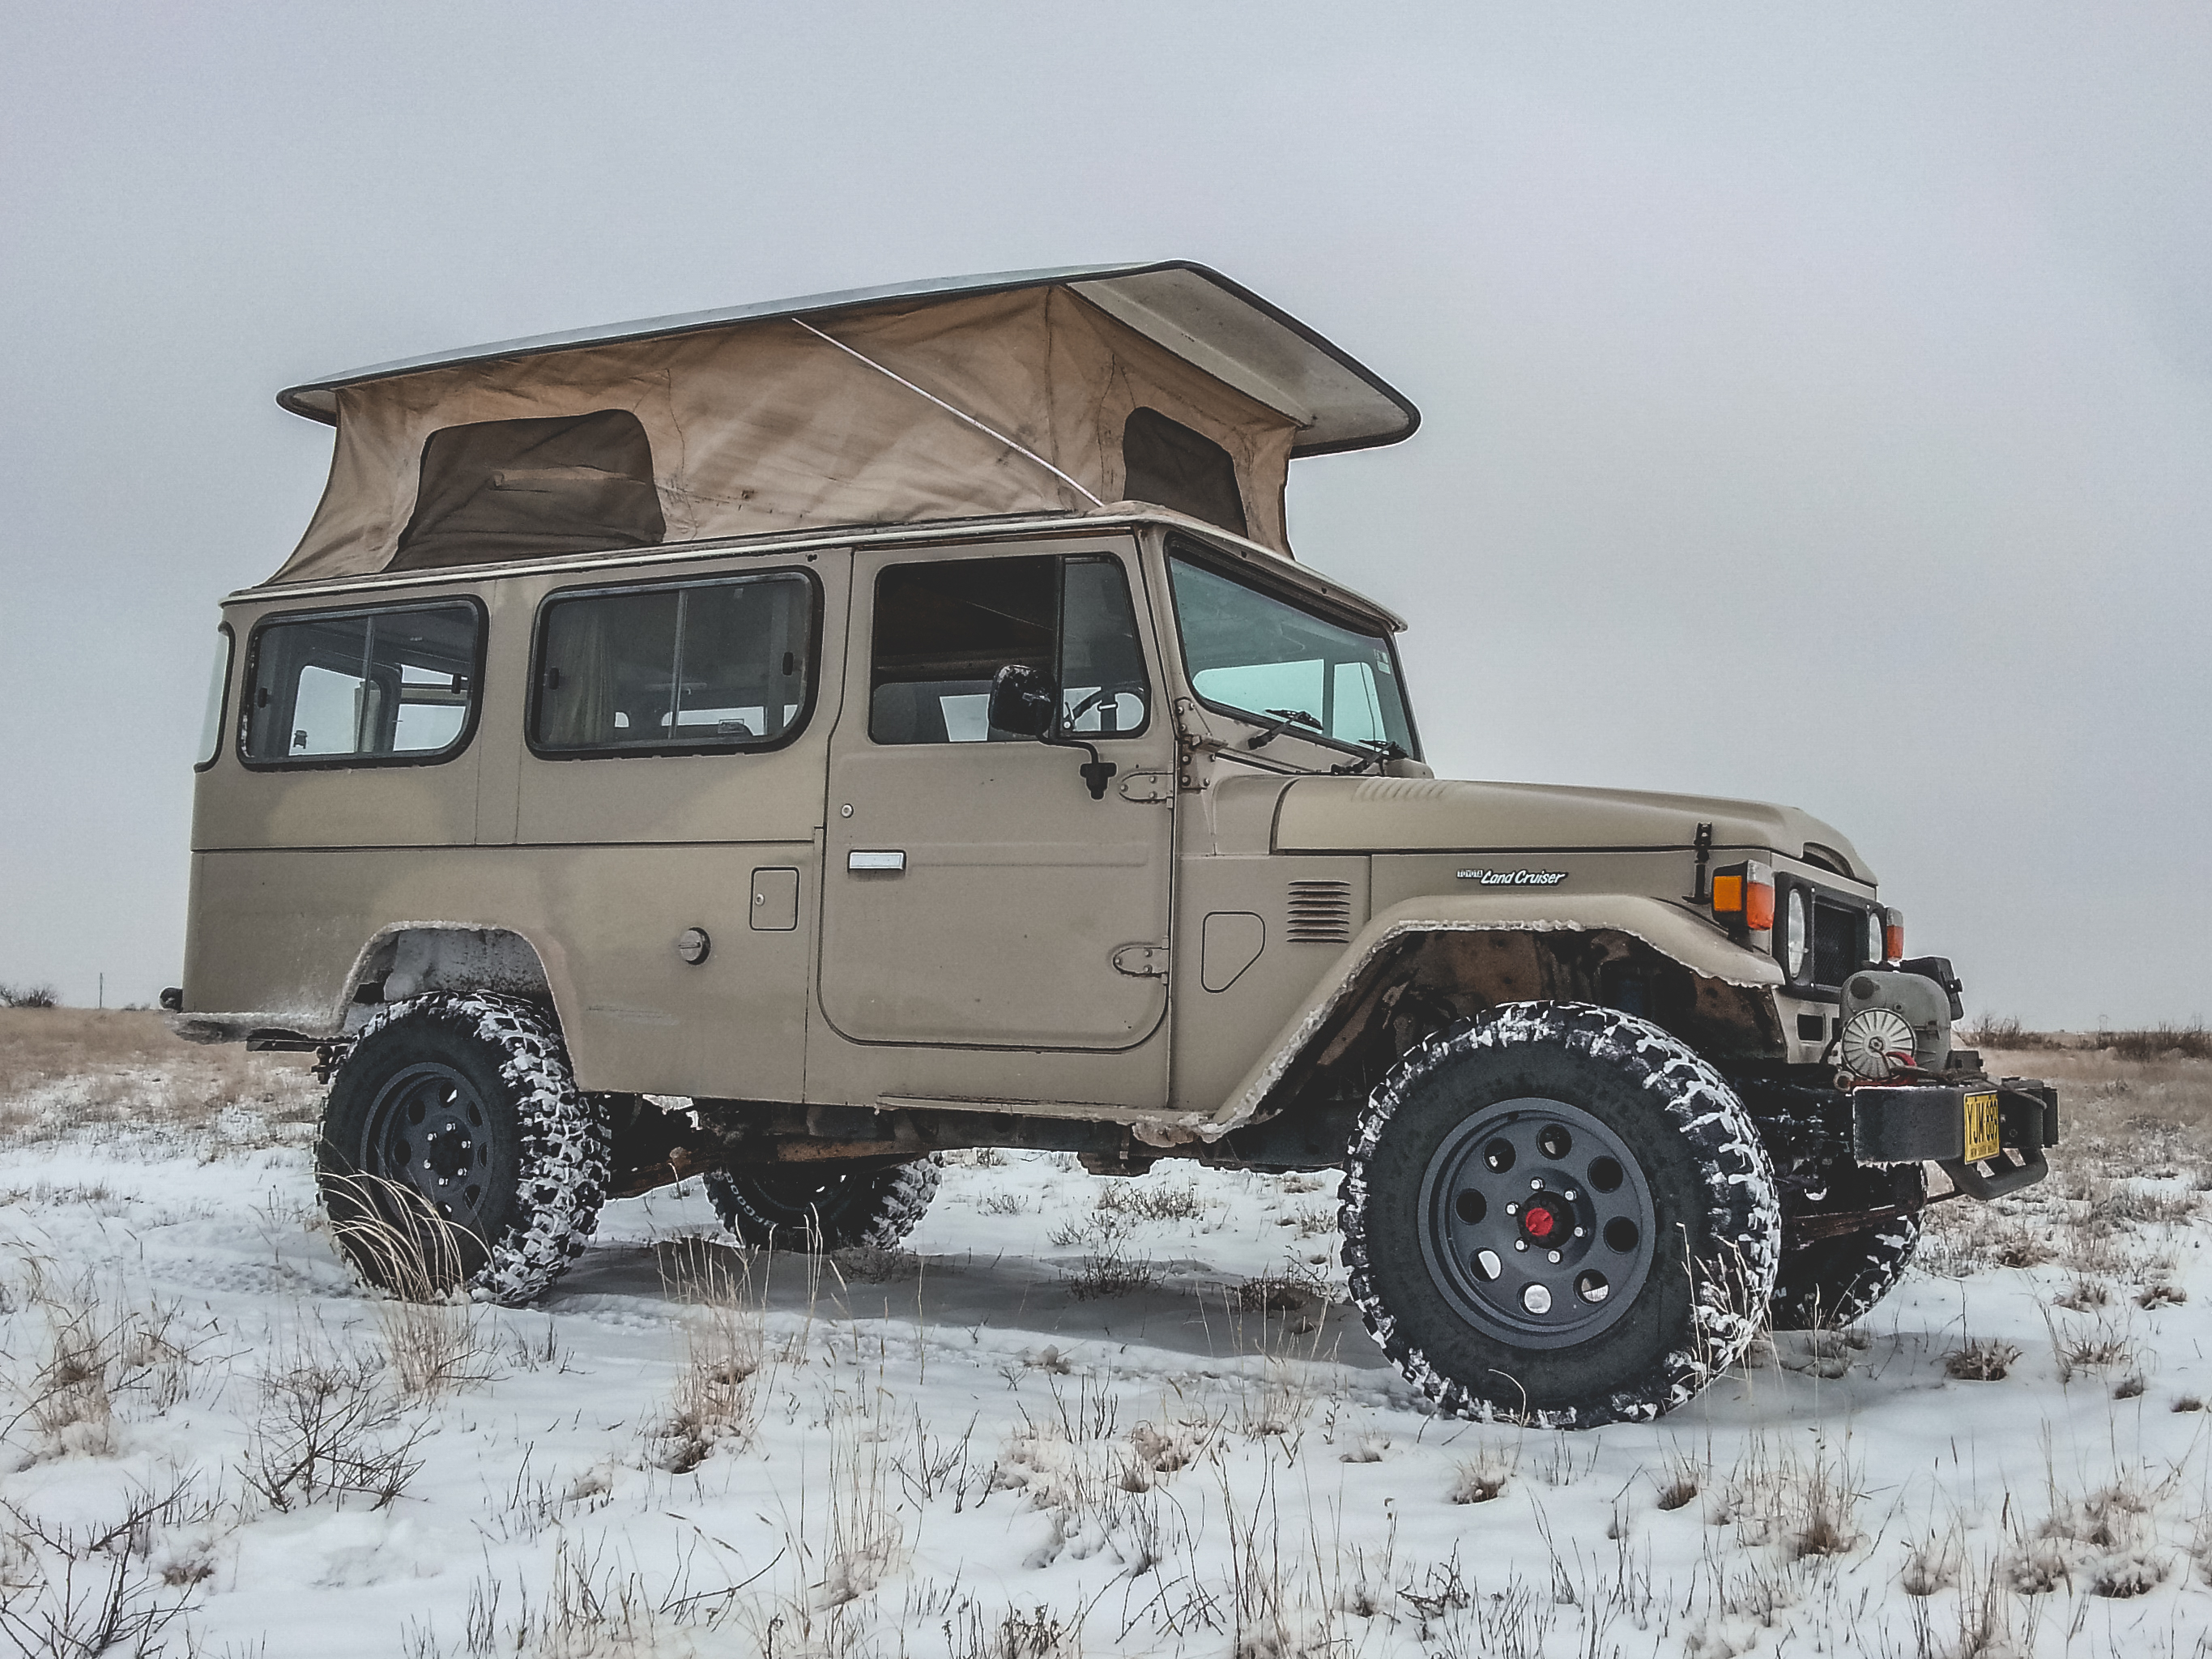 The Beast – HJ45 Land Cruiser Troopy (350 Horsepower)